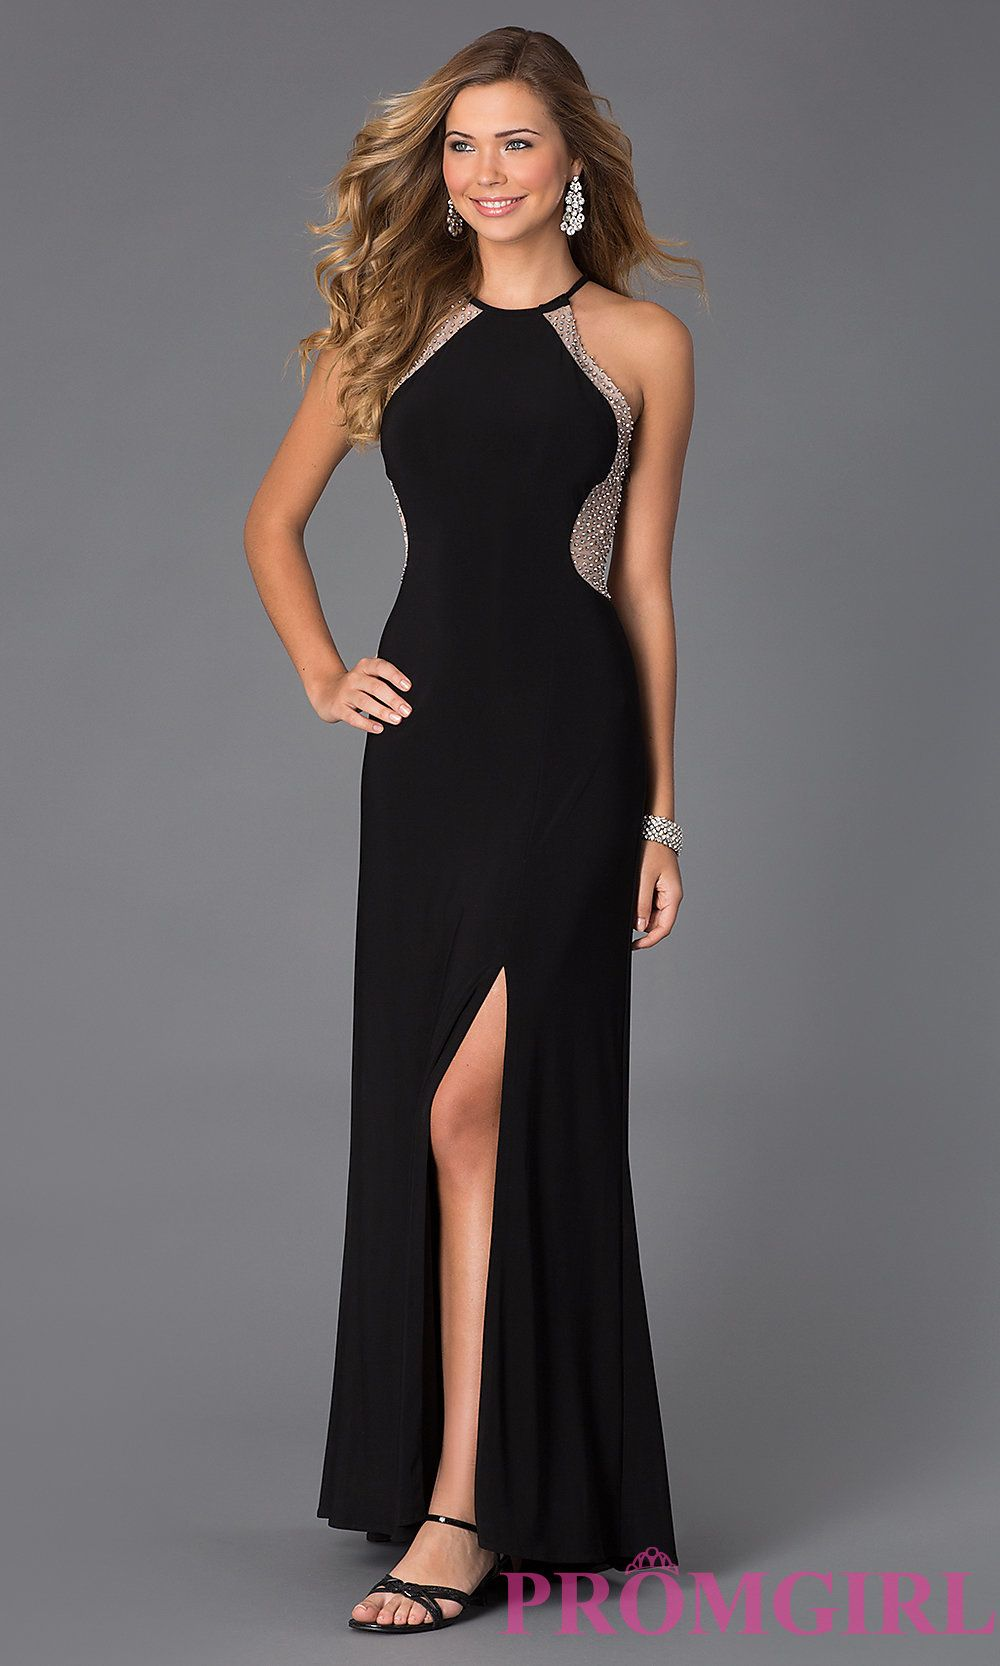 Halter Long Prom Dress with Sheer Beaded Back | Black, Long prom ...